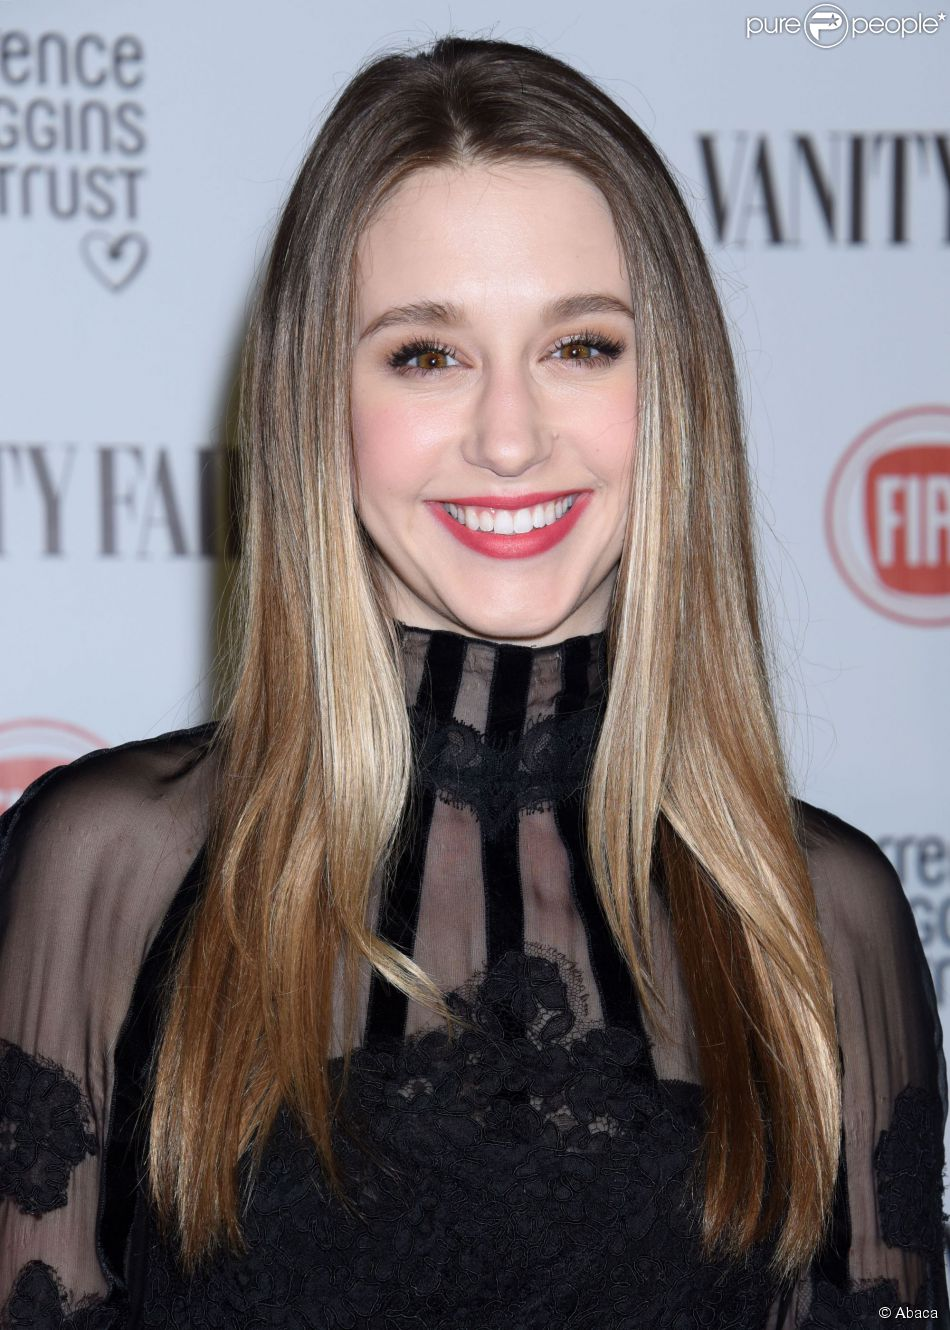 Taissa Farmiga young hollywood